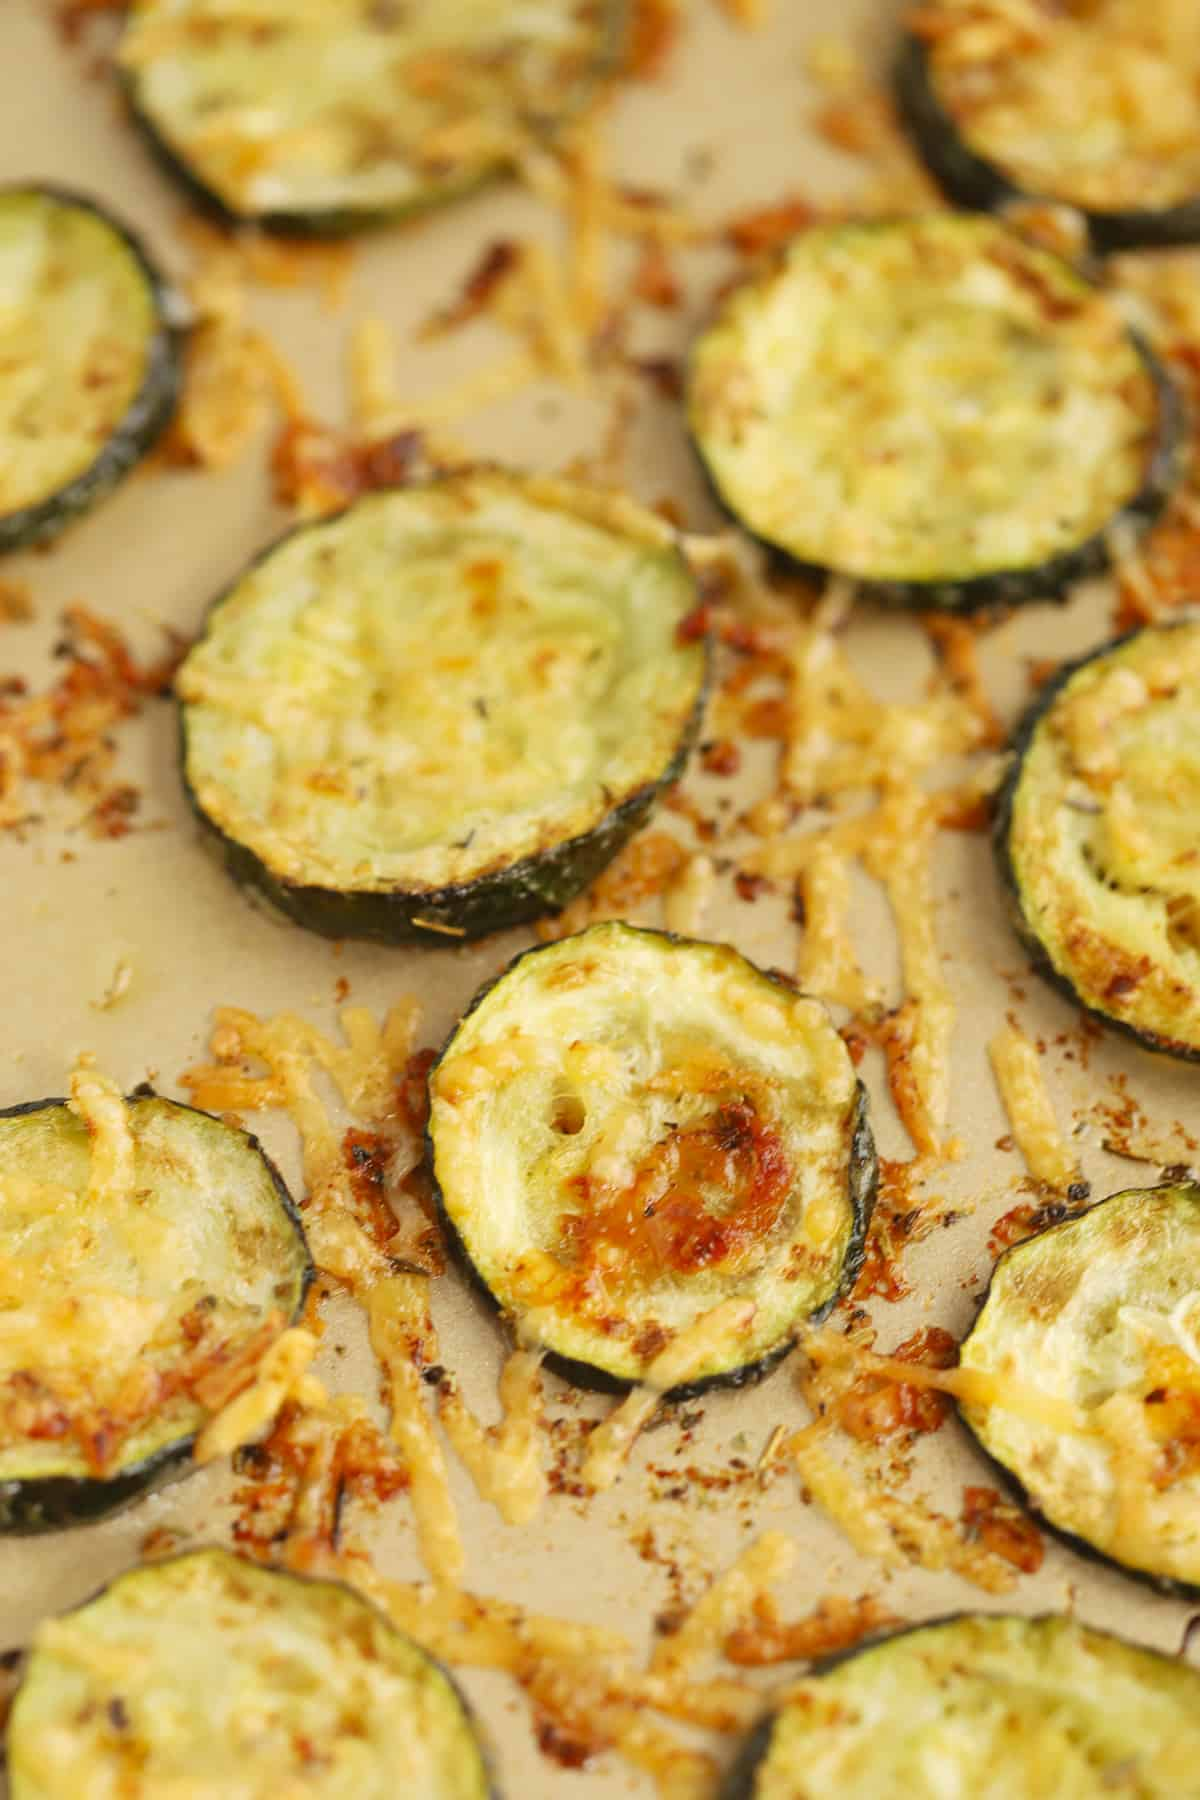 Bake zucchini rounds covered with crispy golden brown Parmesan cheese.